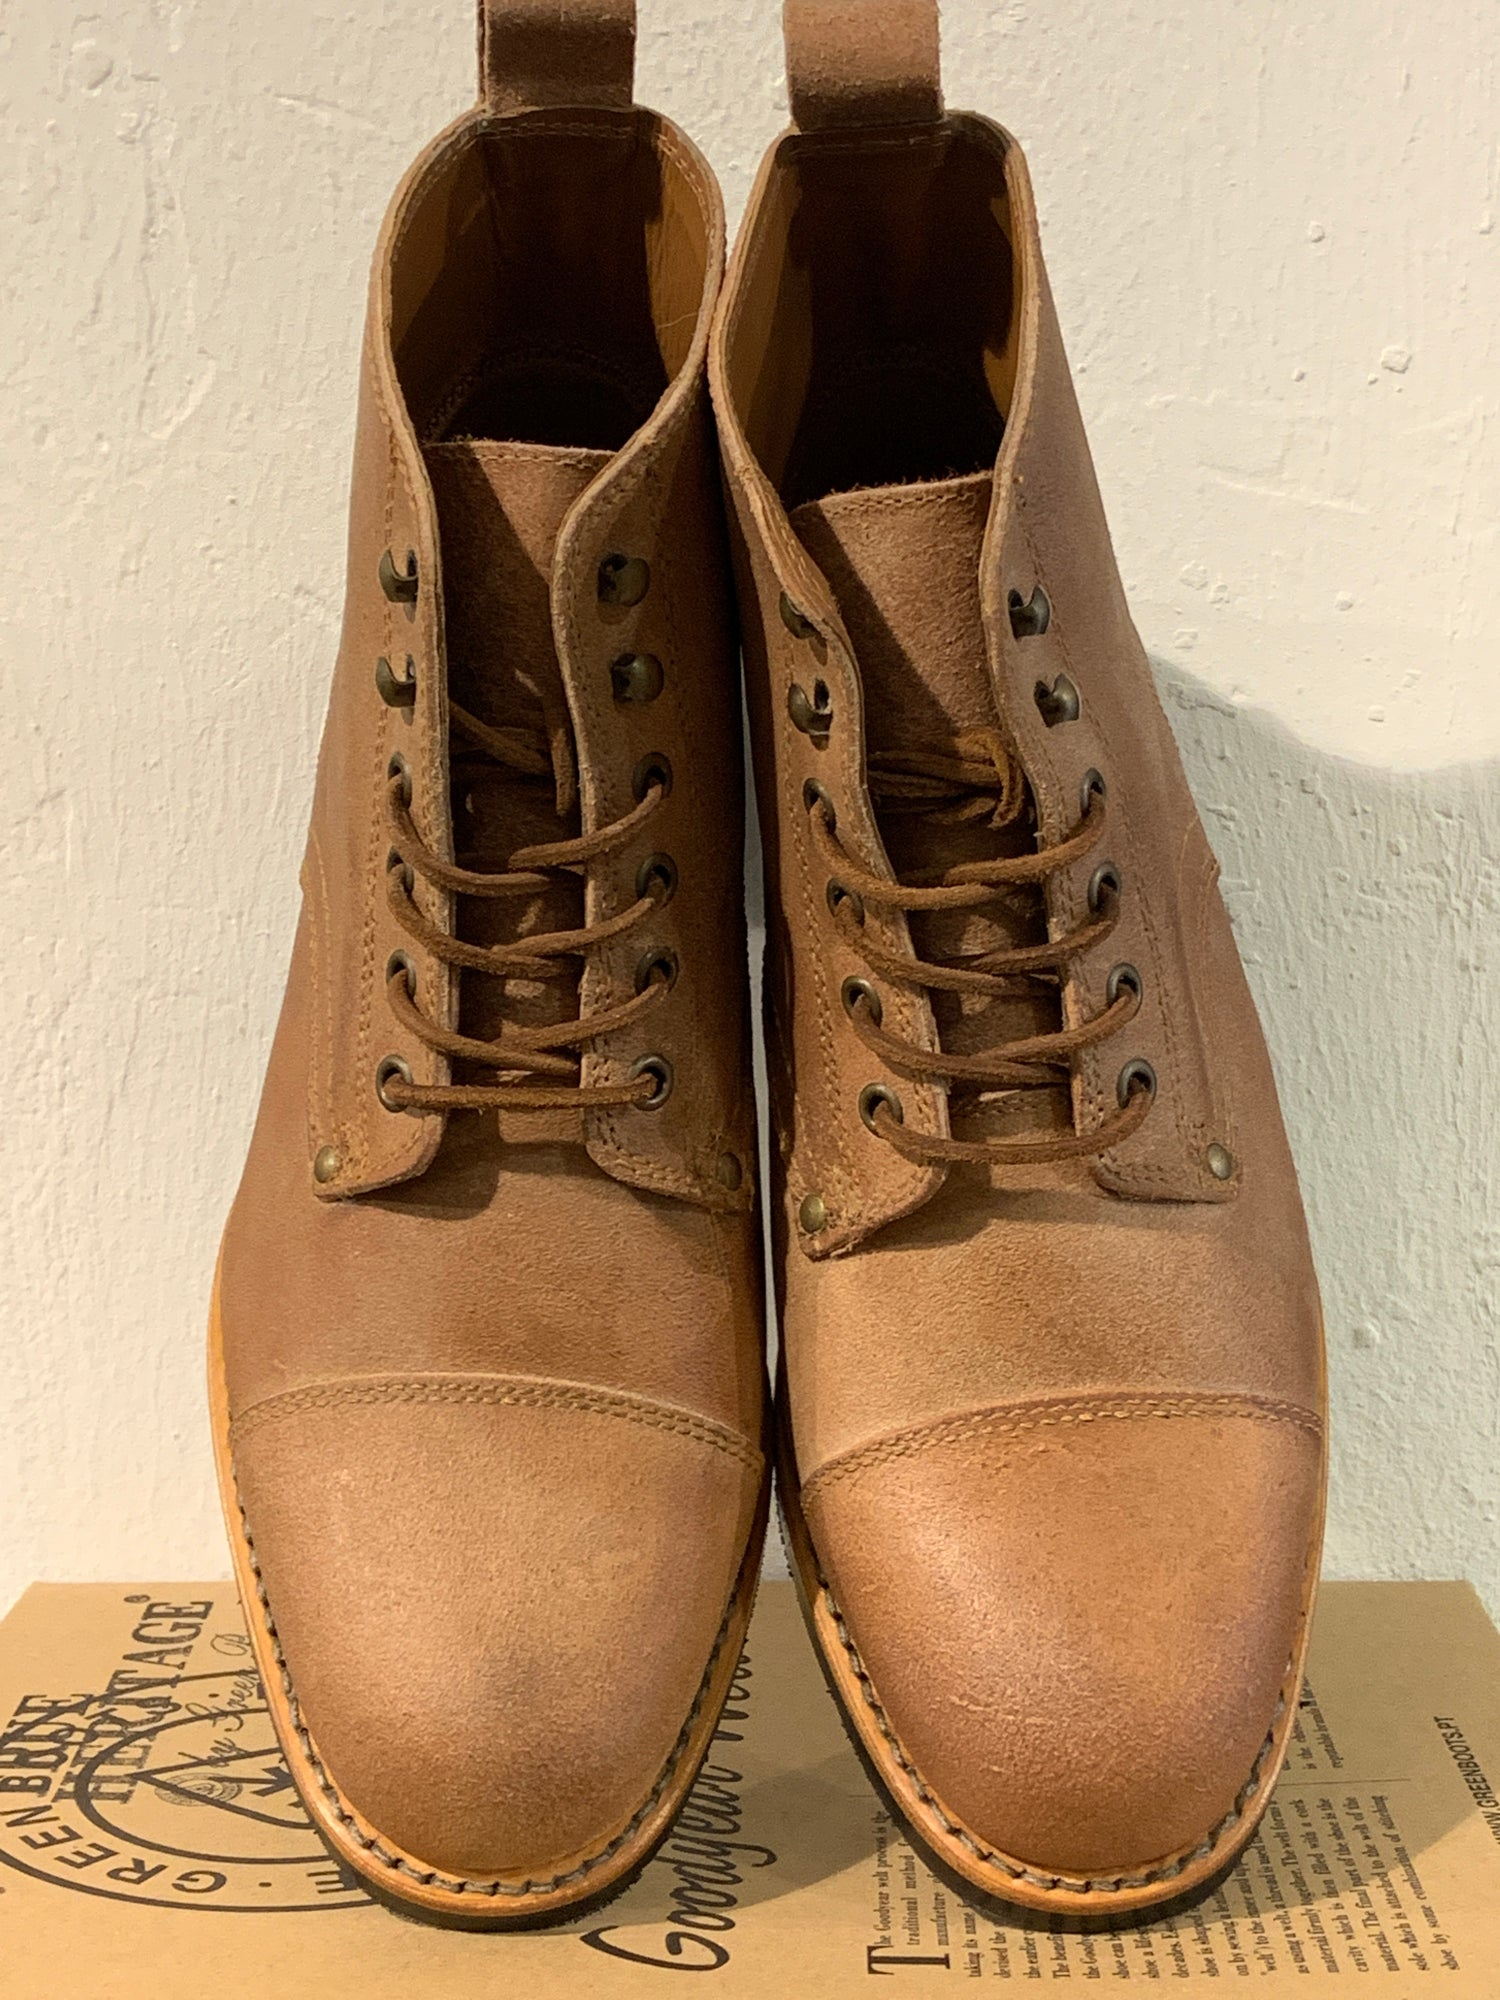 Image of Service Boots 002.01 by True Heritage Boots